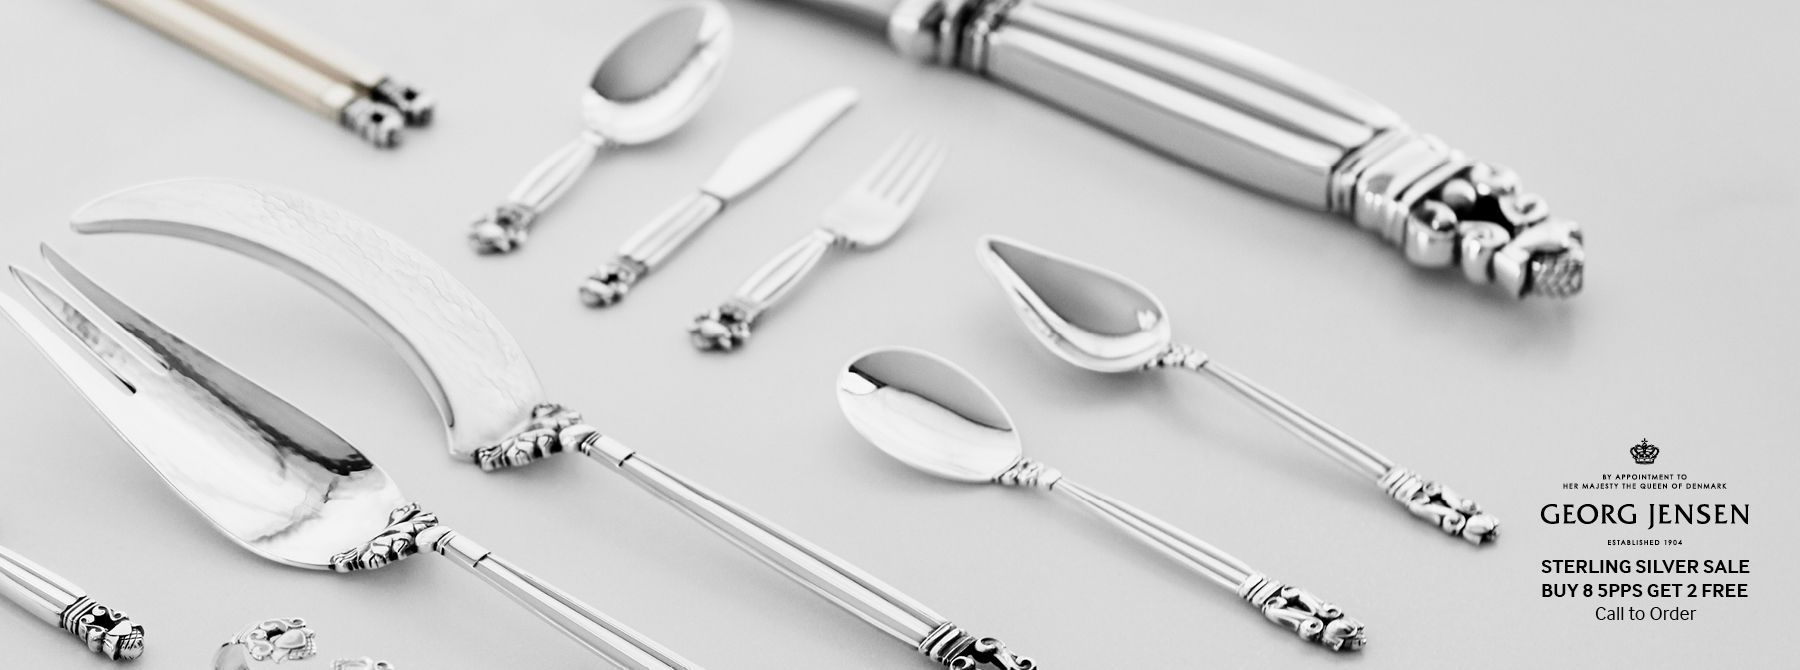 Georg Jensen Sterling & Steel Flatware